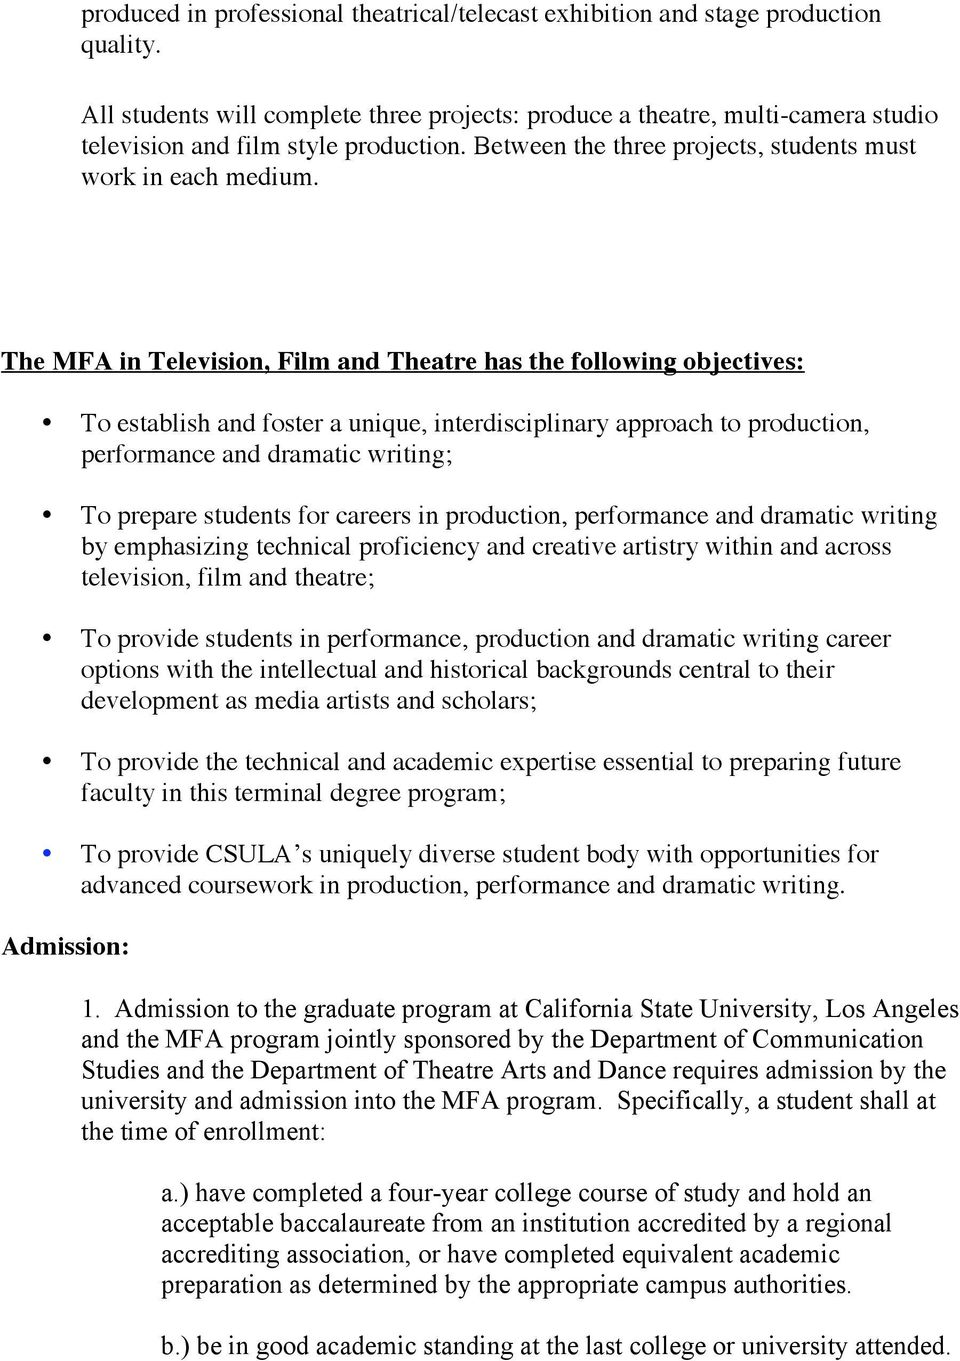 Gpa How To Calculate The Mfa In Television, Film And Theatre Has The  Following Objectives: To Establish And